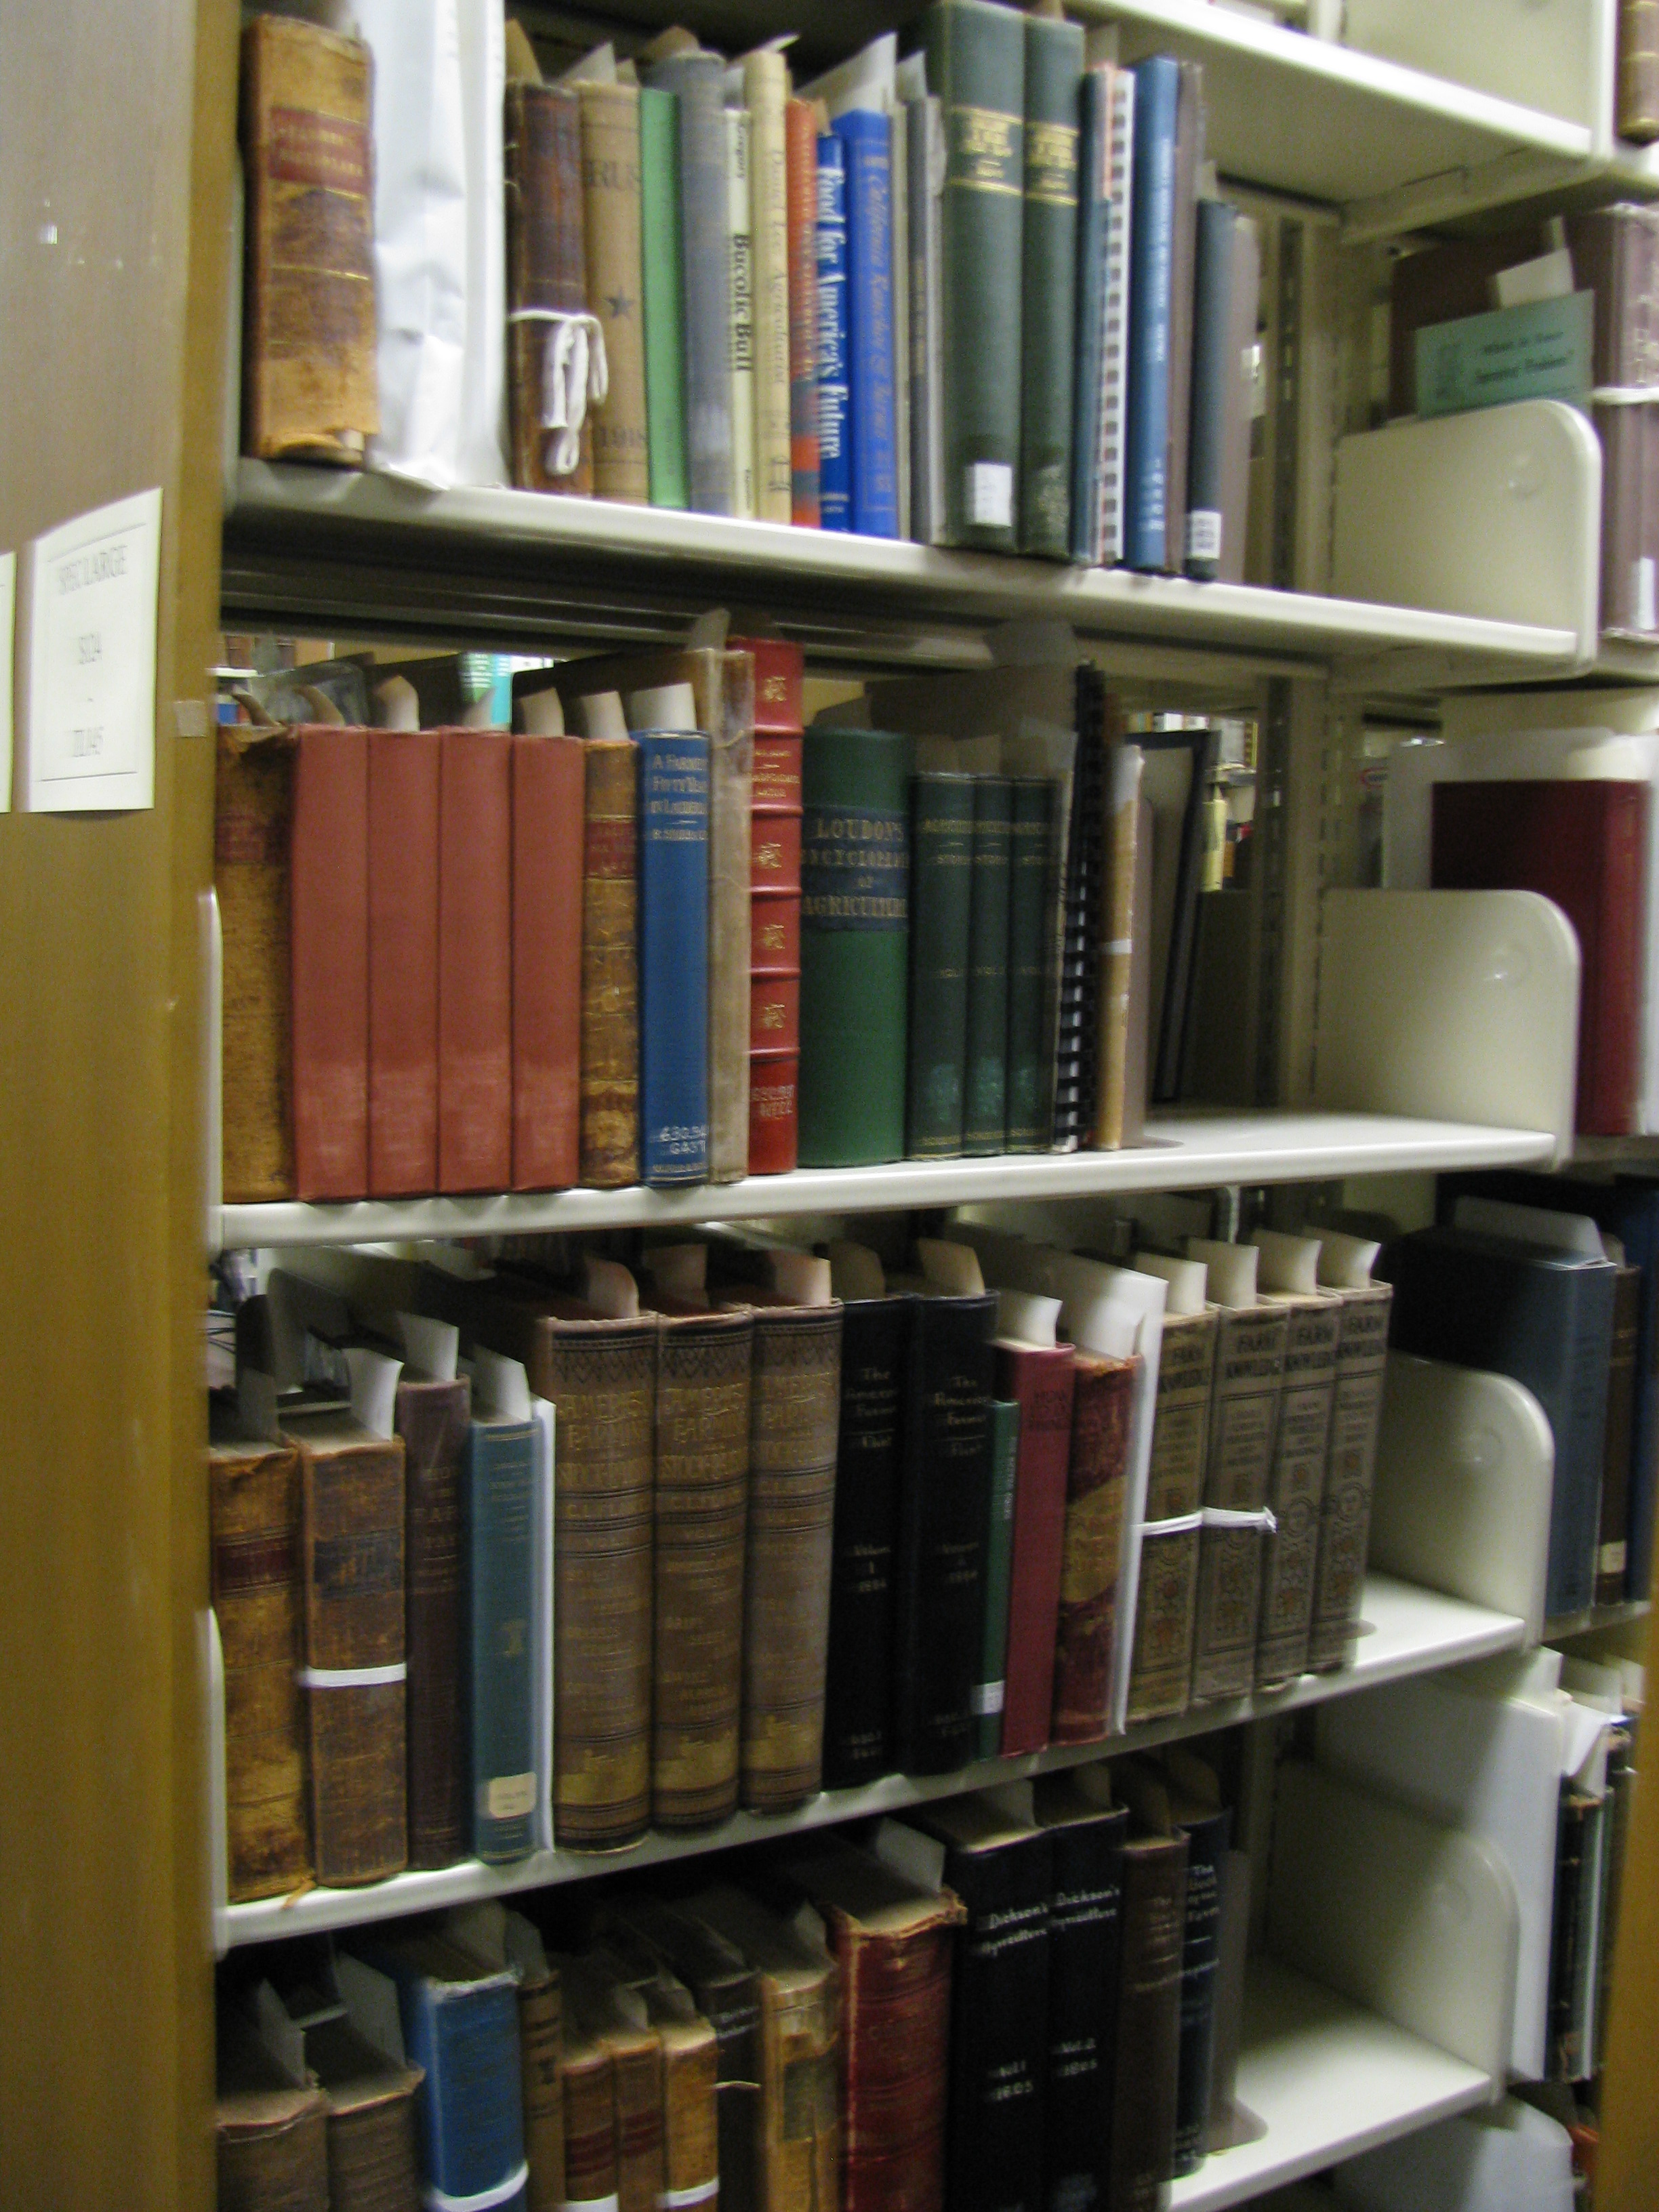 Our rare books are shelved in call number order, but not all together. We have some shelved by size (so we can maximize available shelves) and others shelved by topic (like university publications and Civil War books).